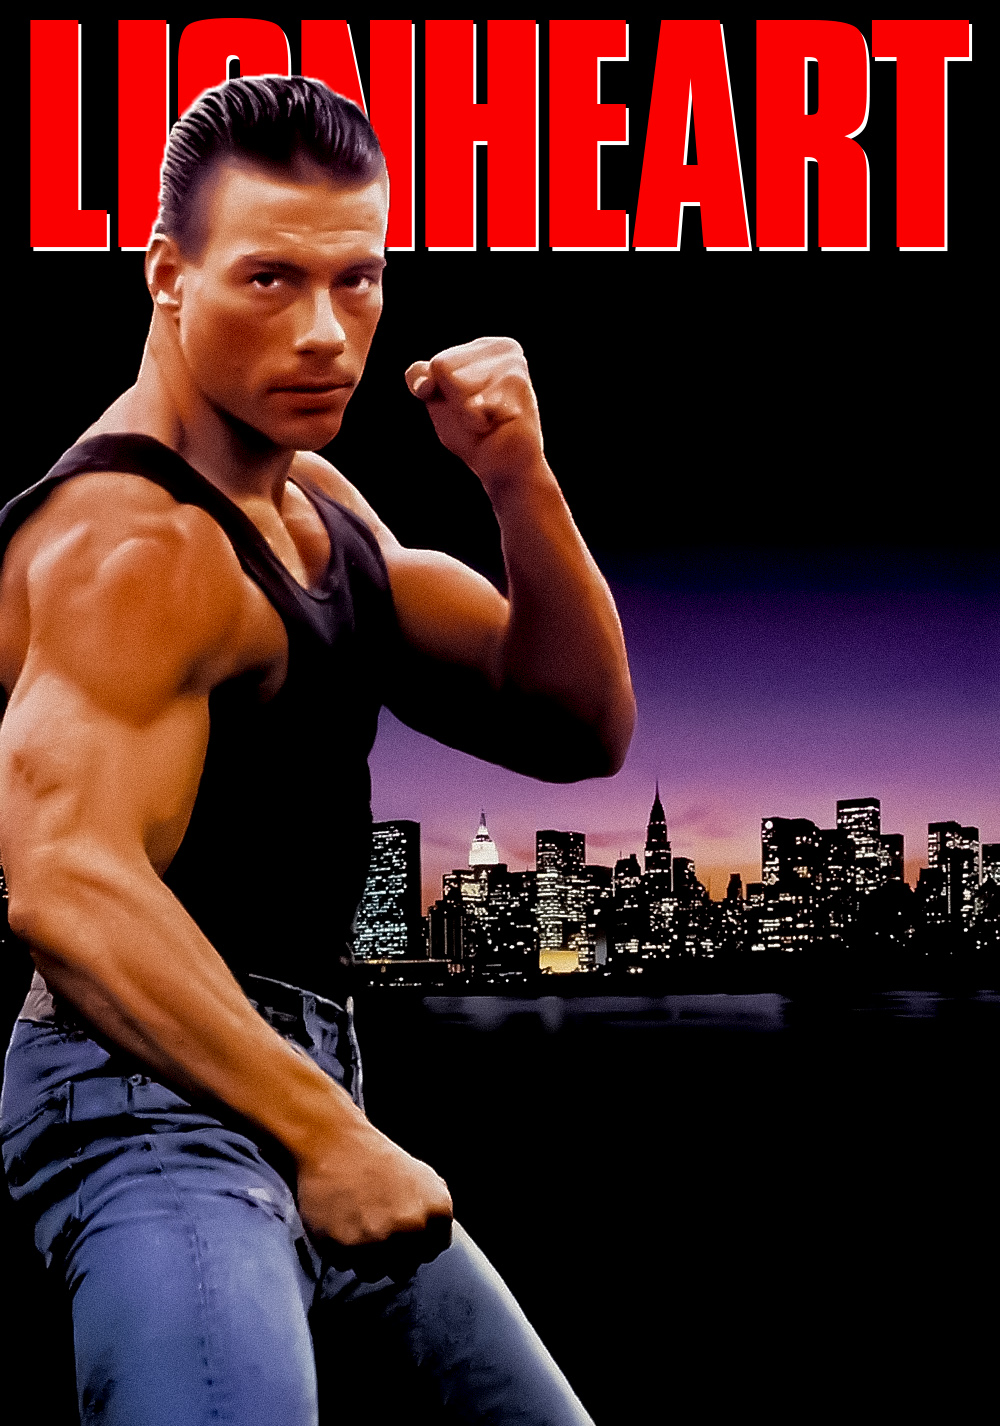 Lionheart (1990) full movie in ☆hd quality☆ video dailymotion.